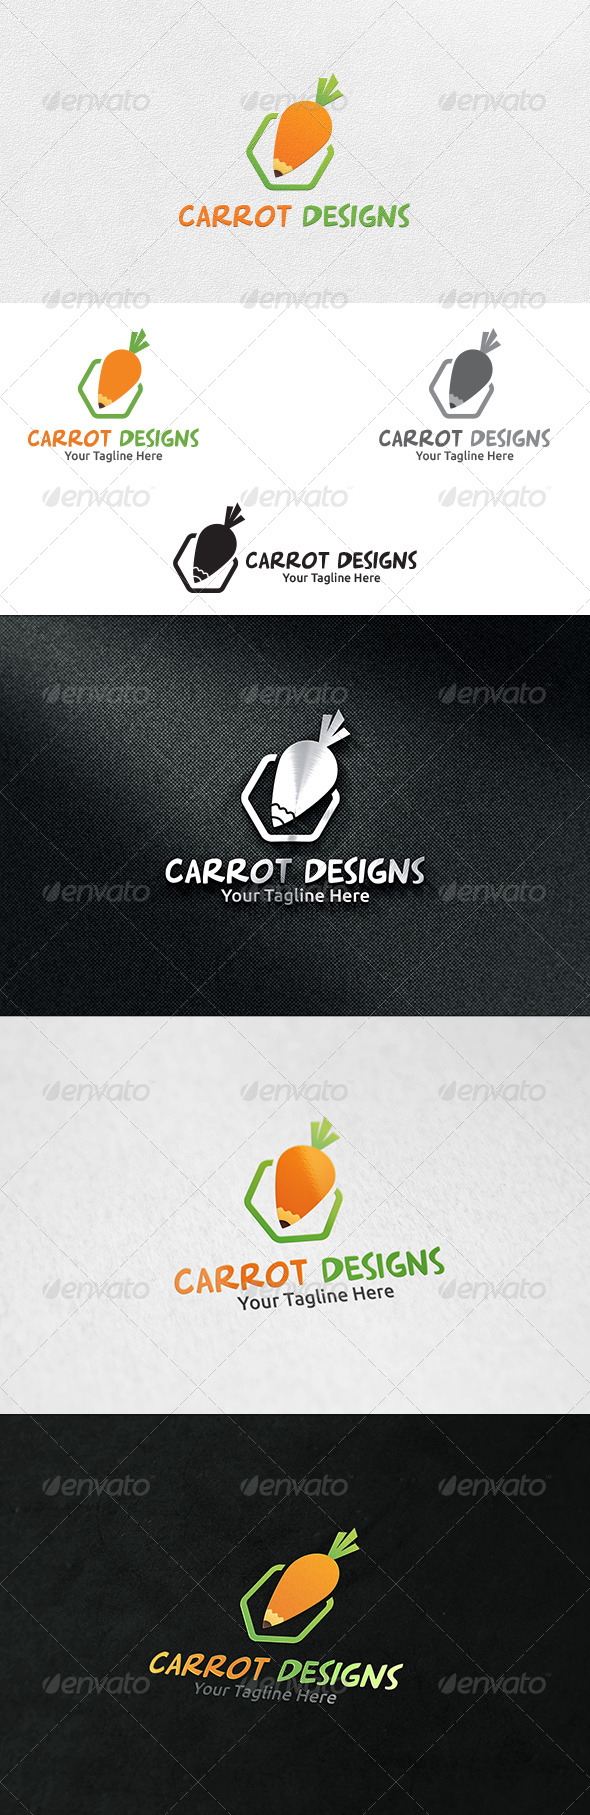 GraphicRiver Carrot Designs Logo Template 6553432